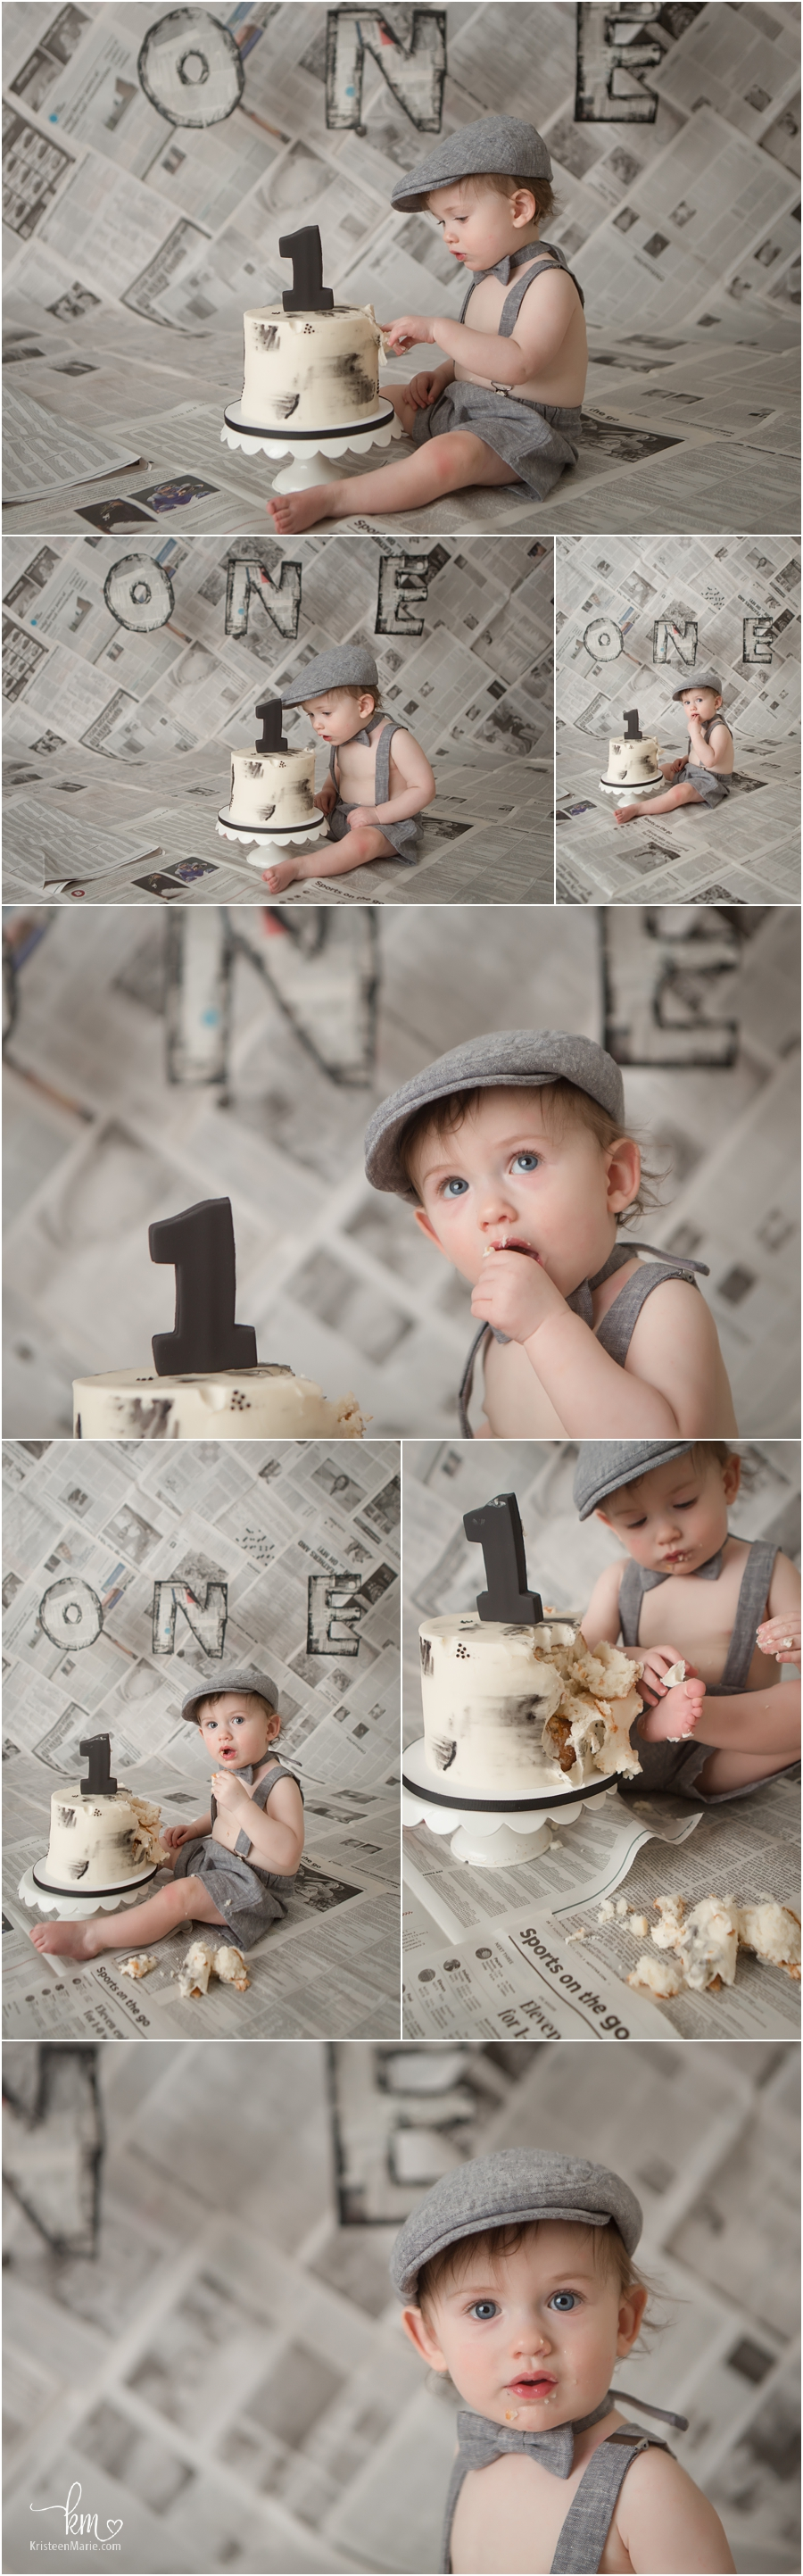 newspaper/newsboy cake smash setup - 1st birthday